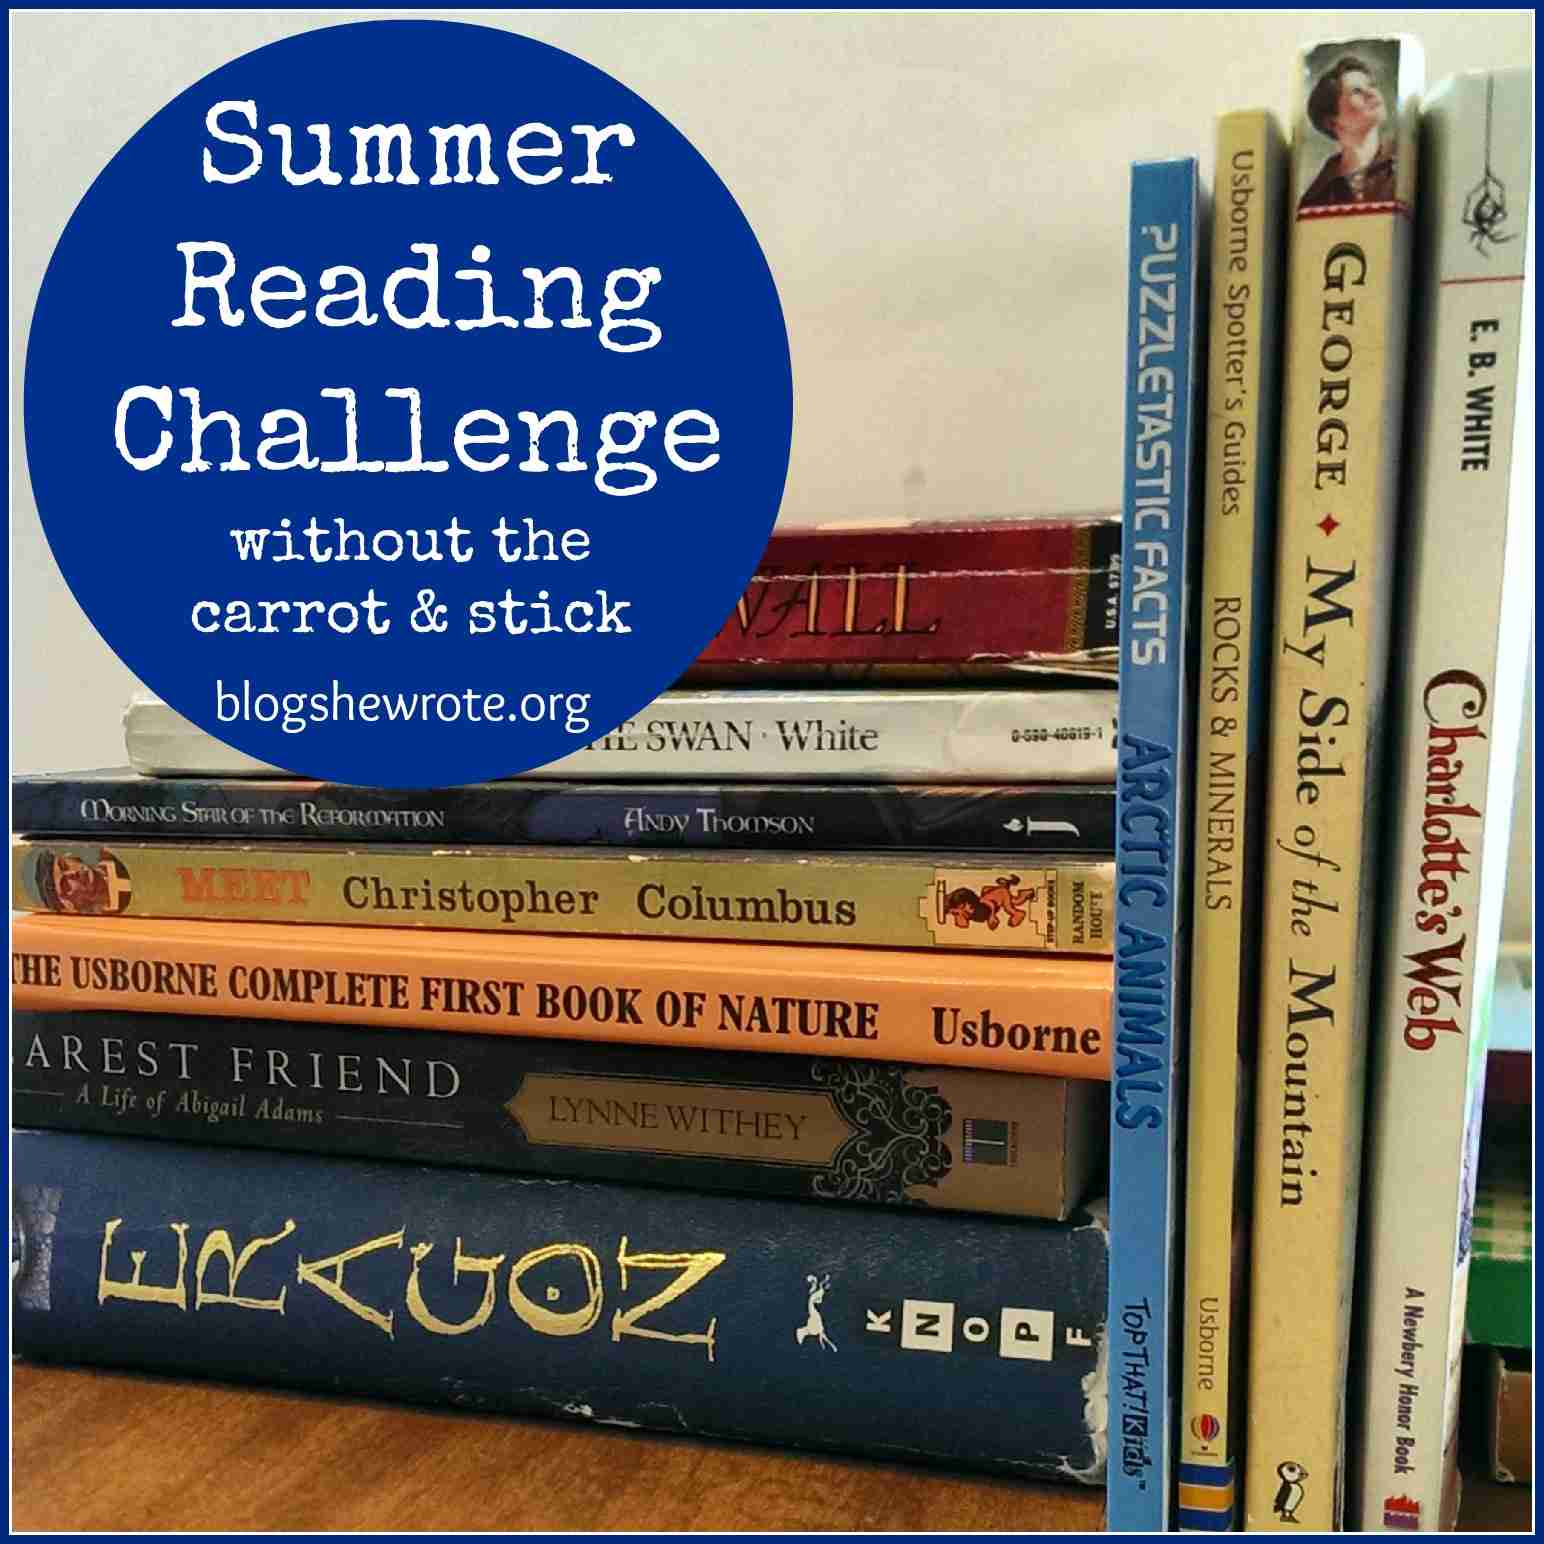 Blog, She Wrote: Summer Reading Challenge without The Carrot & Stick